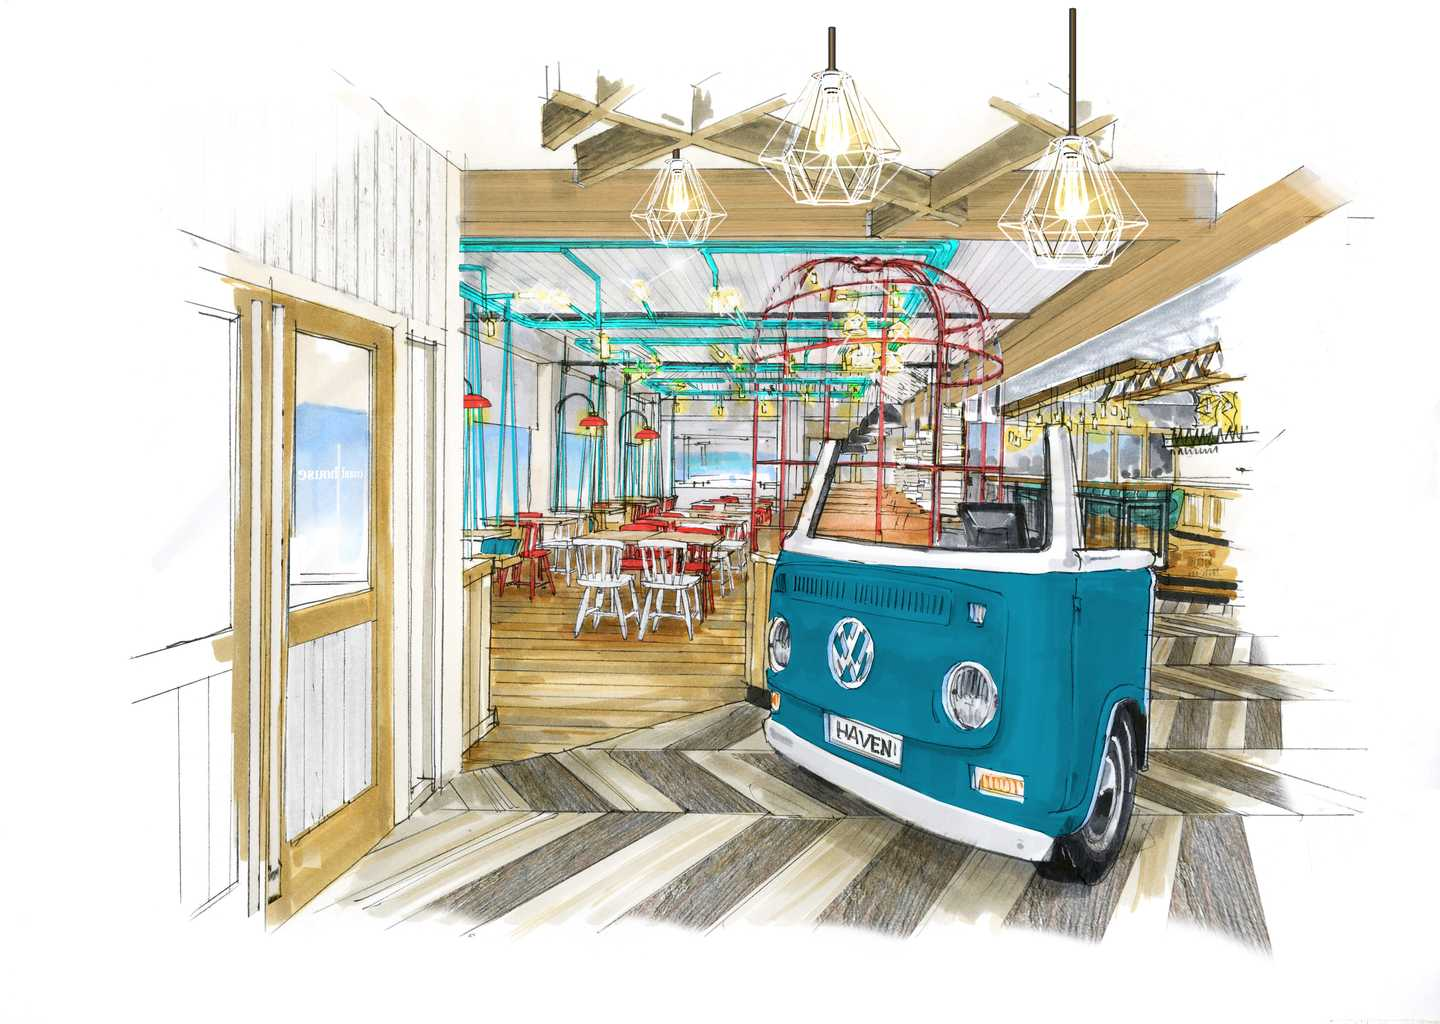 Artist's impression of the Coast House bar and grill